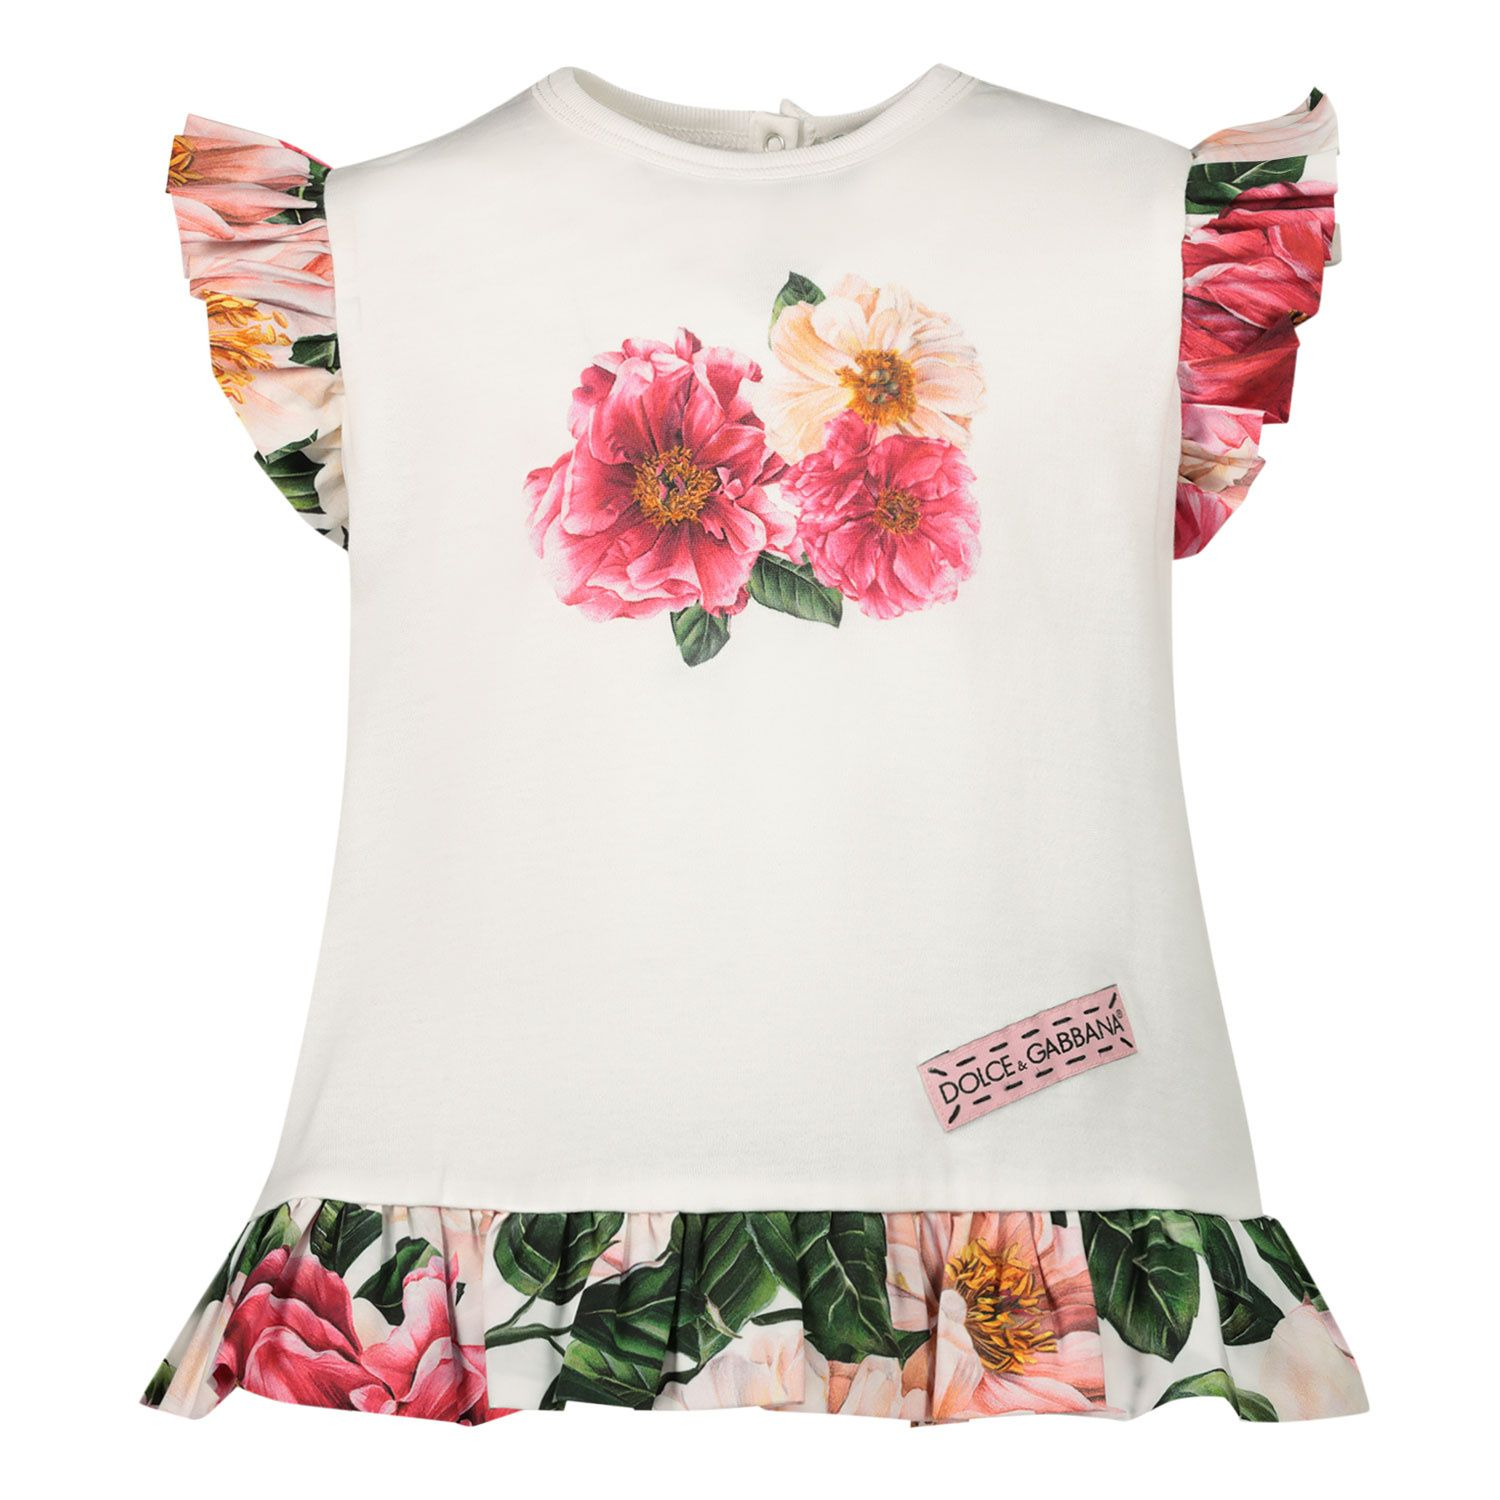 Picture of Dolce & Gabbana L2JTGE G7YFC baby tunic pink